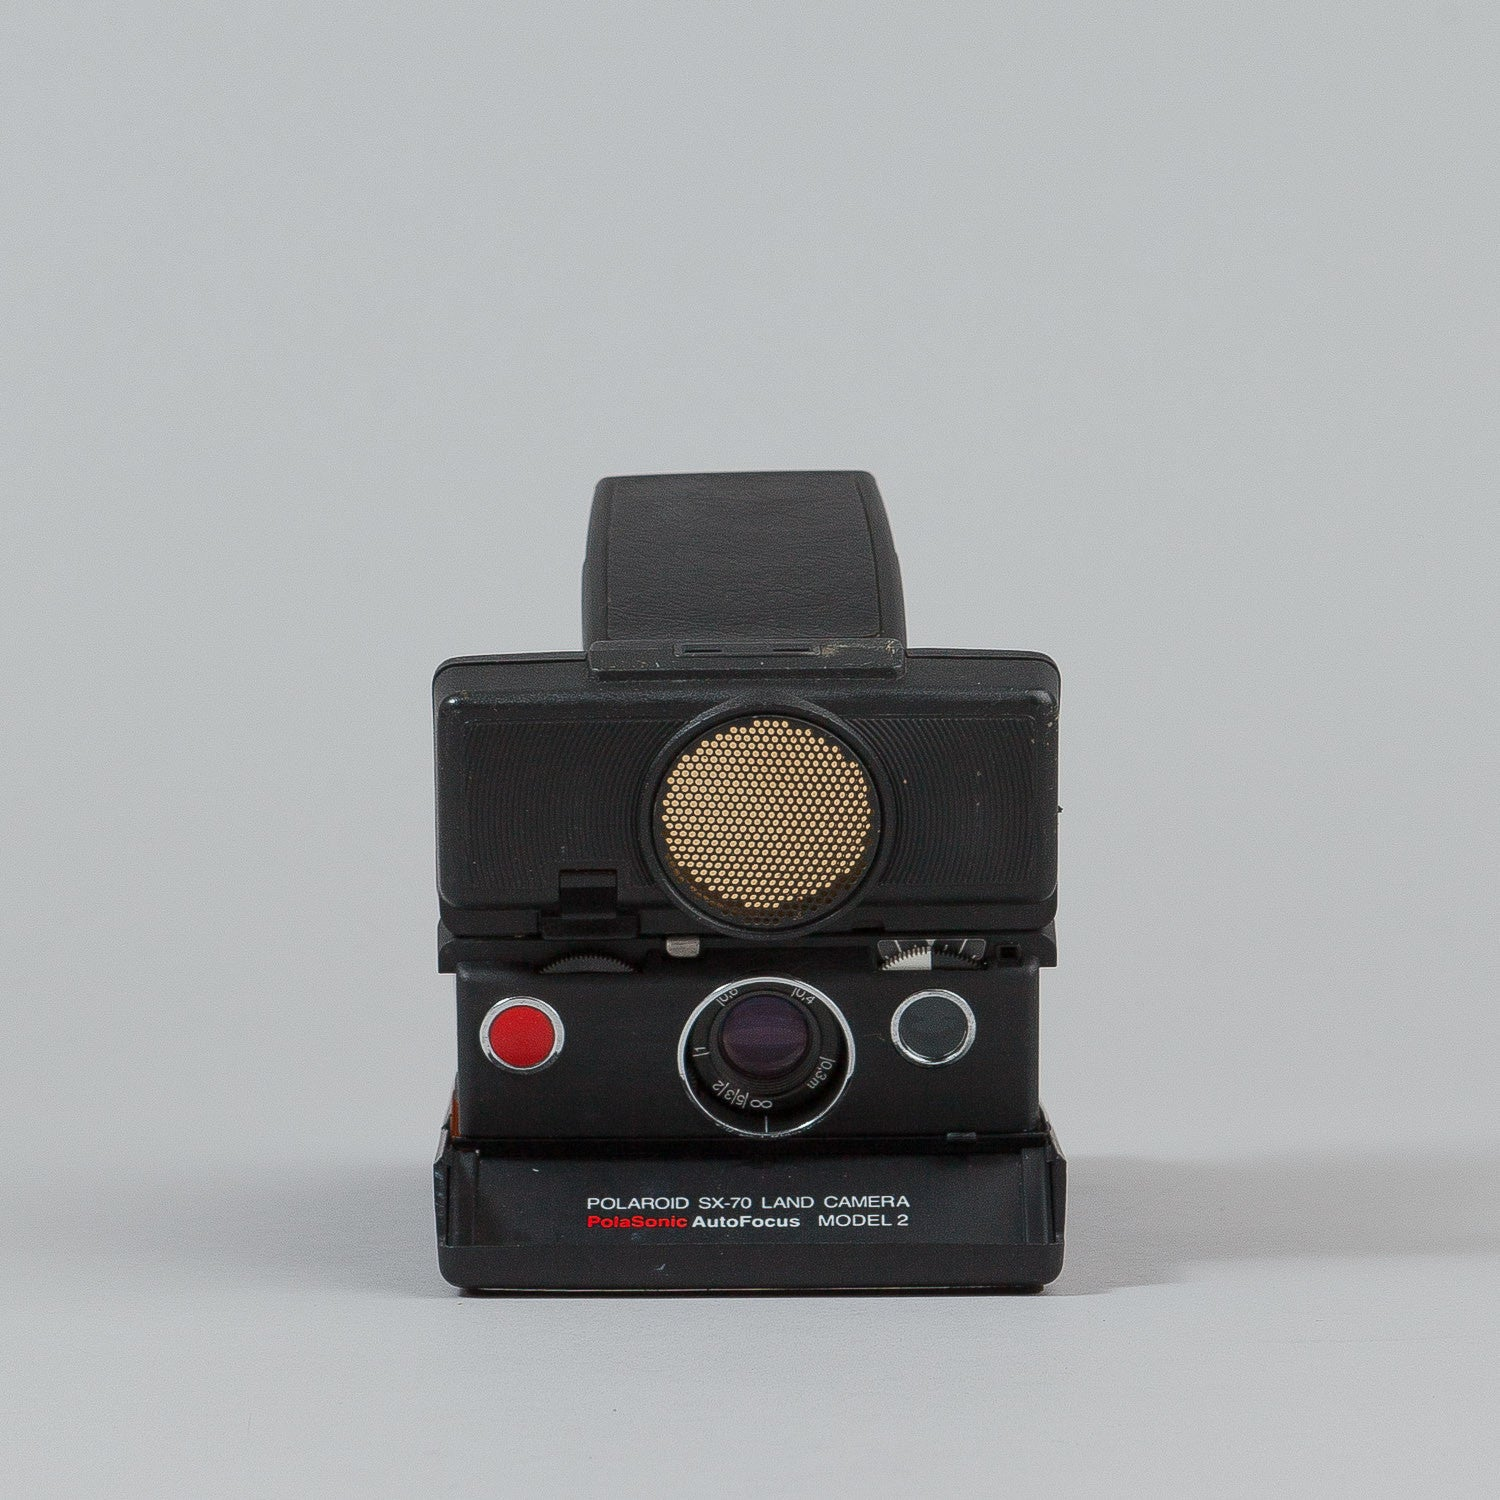 Impossible Refurbished Polaroid SX-70 Sonar Camera Kit